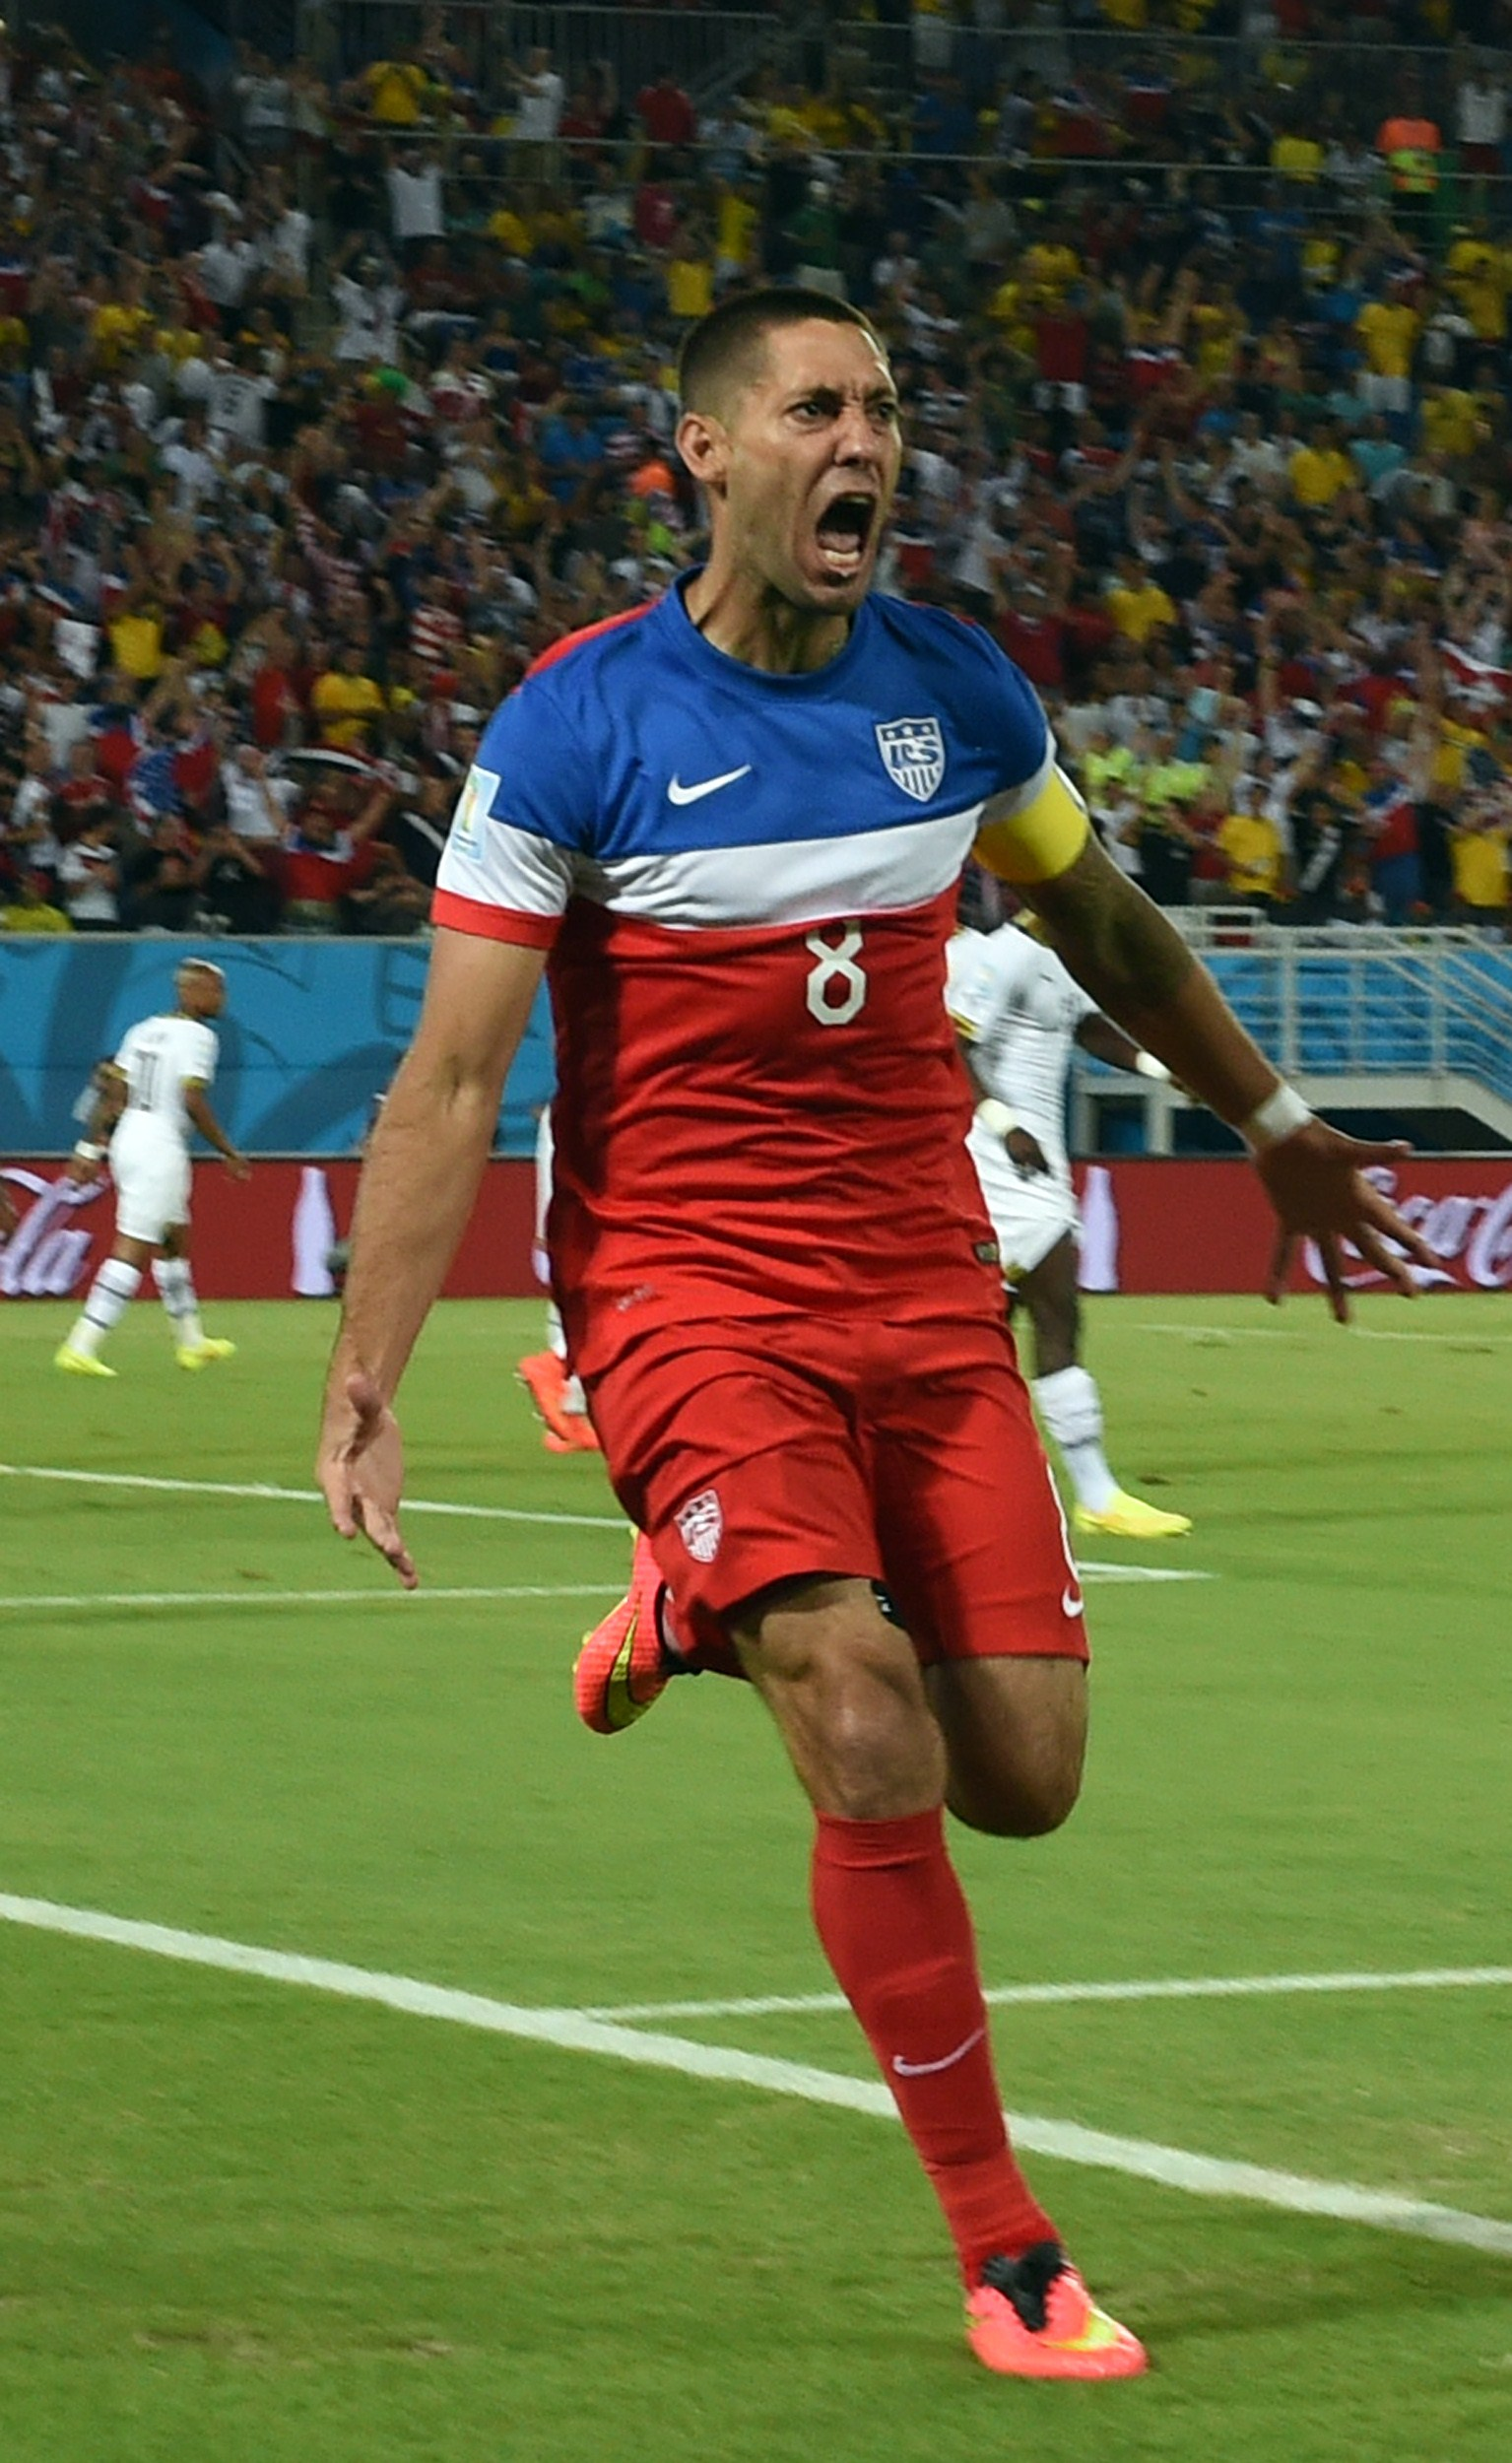 US forward Clint Dempsey celebrates after scoring during a Group G football match between Ghana and US at the Dunas Arena in Natal during the 2014 FIFA World Cup on June 16, 2014.   (AFP PHOTO / CARL DE SOUZA)